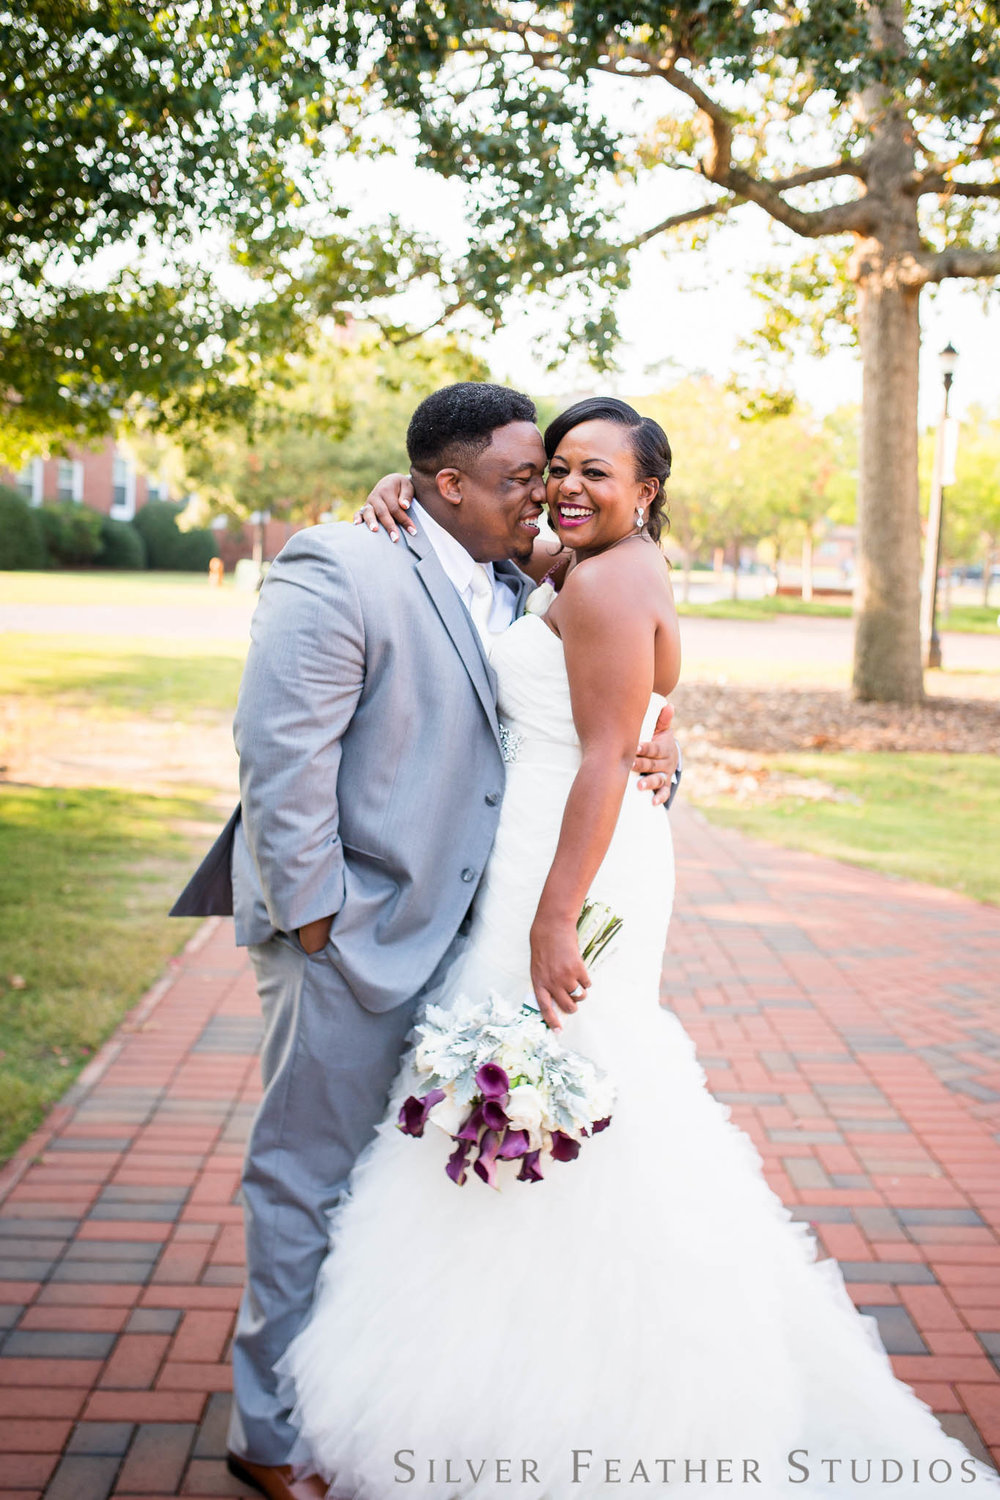 brittany and thomas' wedding at Regency Banquet Hall by Dunn Wedding Photographer, Silver Feather Studios